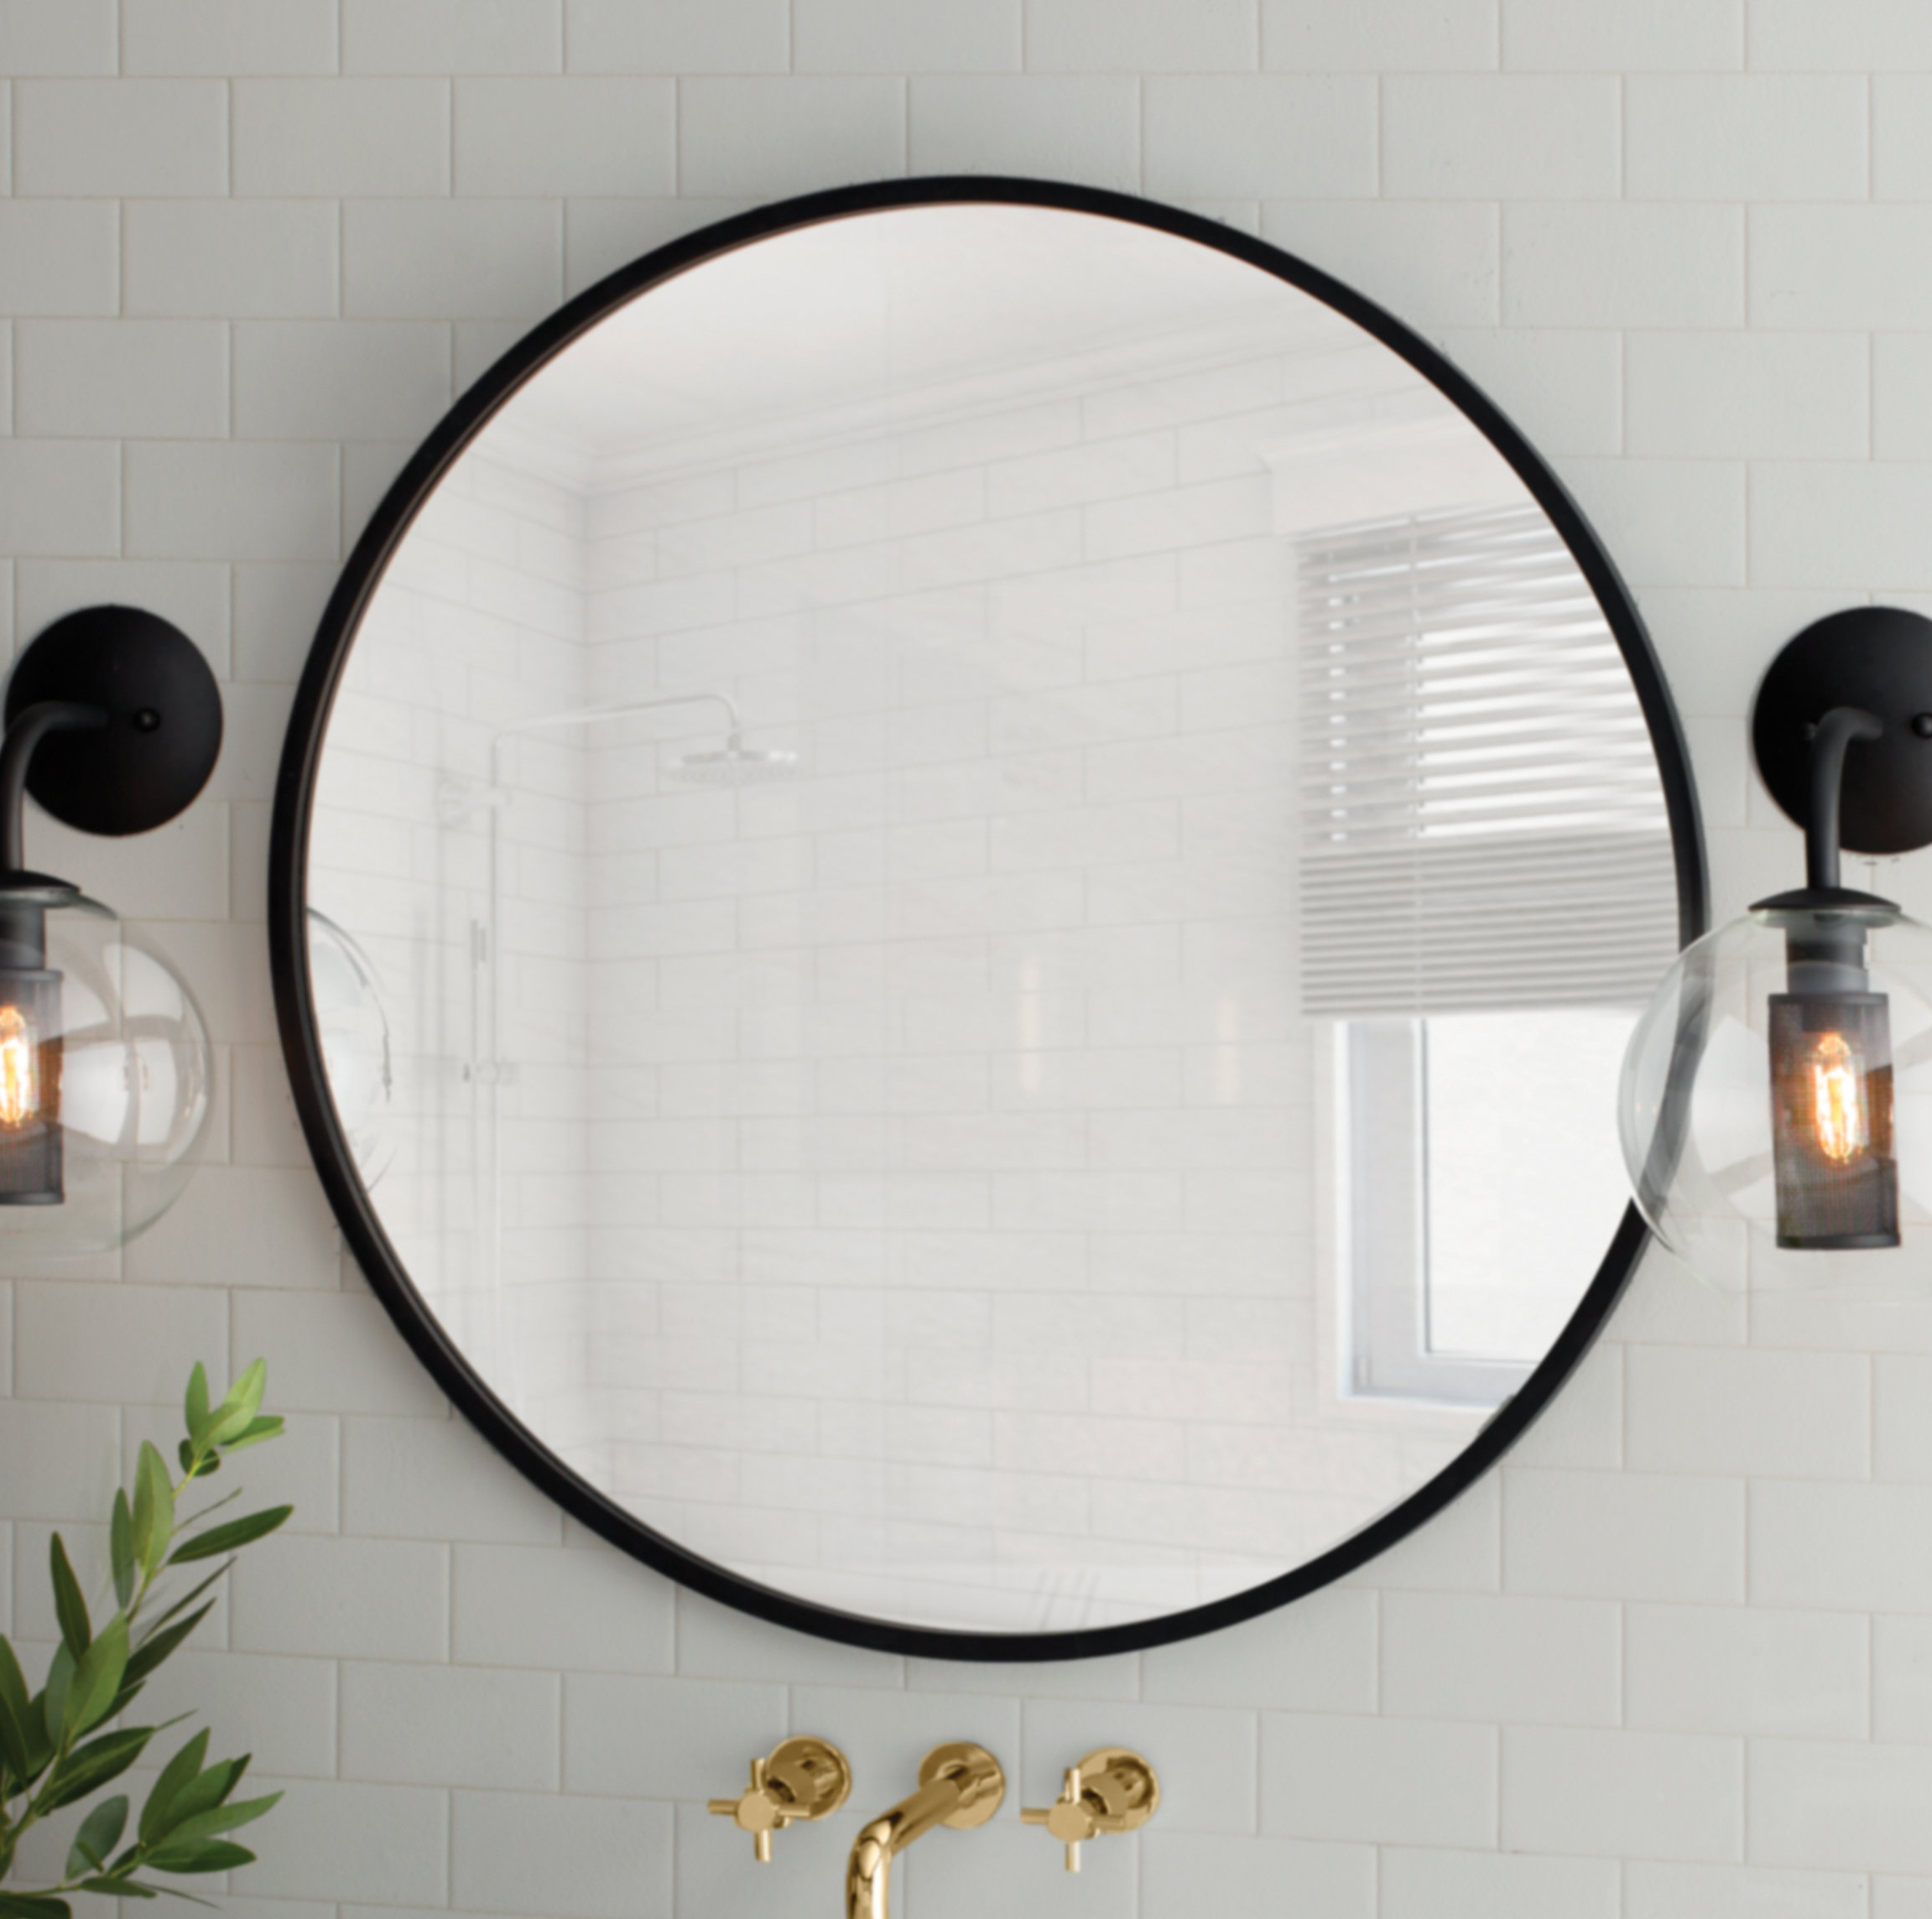 Dekalb Modern & Contemporary Distressed Accent Mirrors Pertaining To Trendy Umbra Hub Modern And Contemporary Accent Mirror (View 5 of 20)